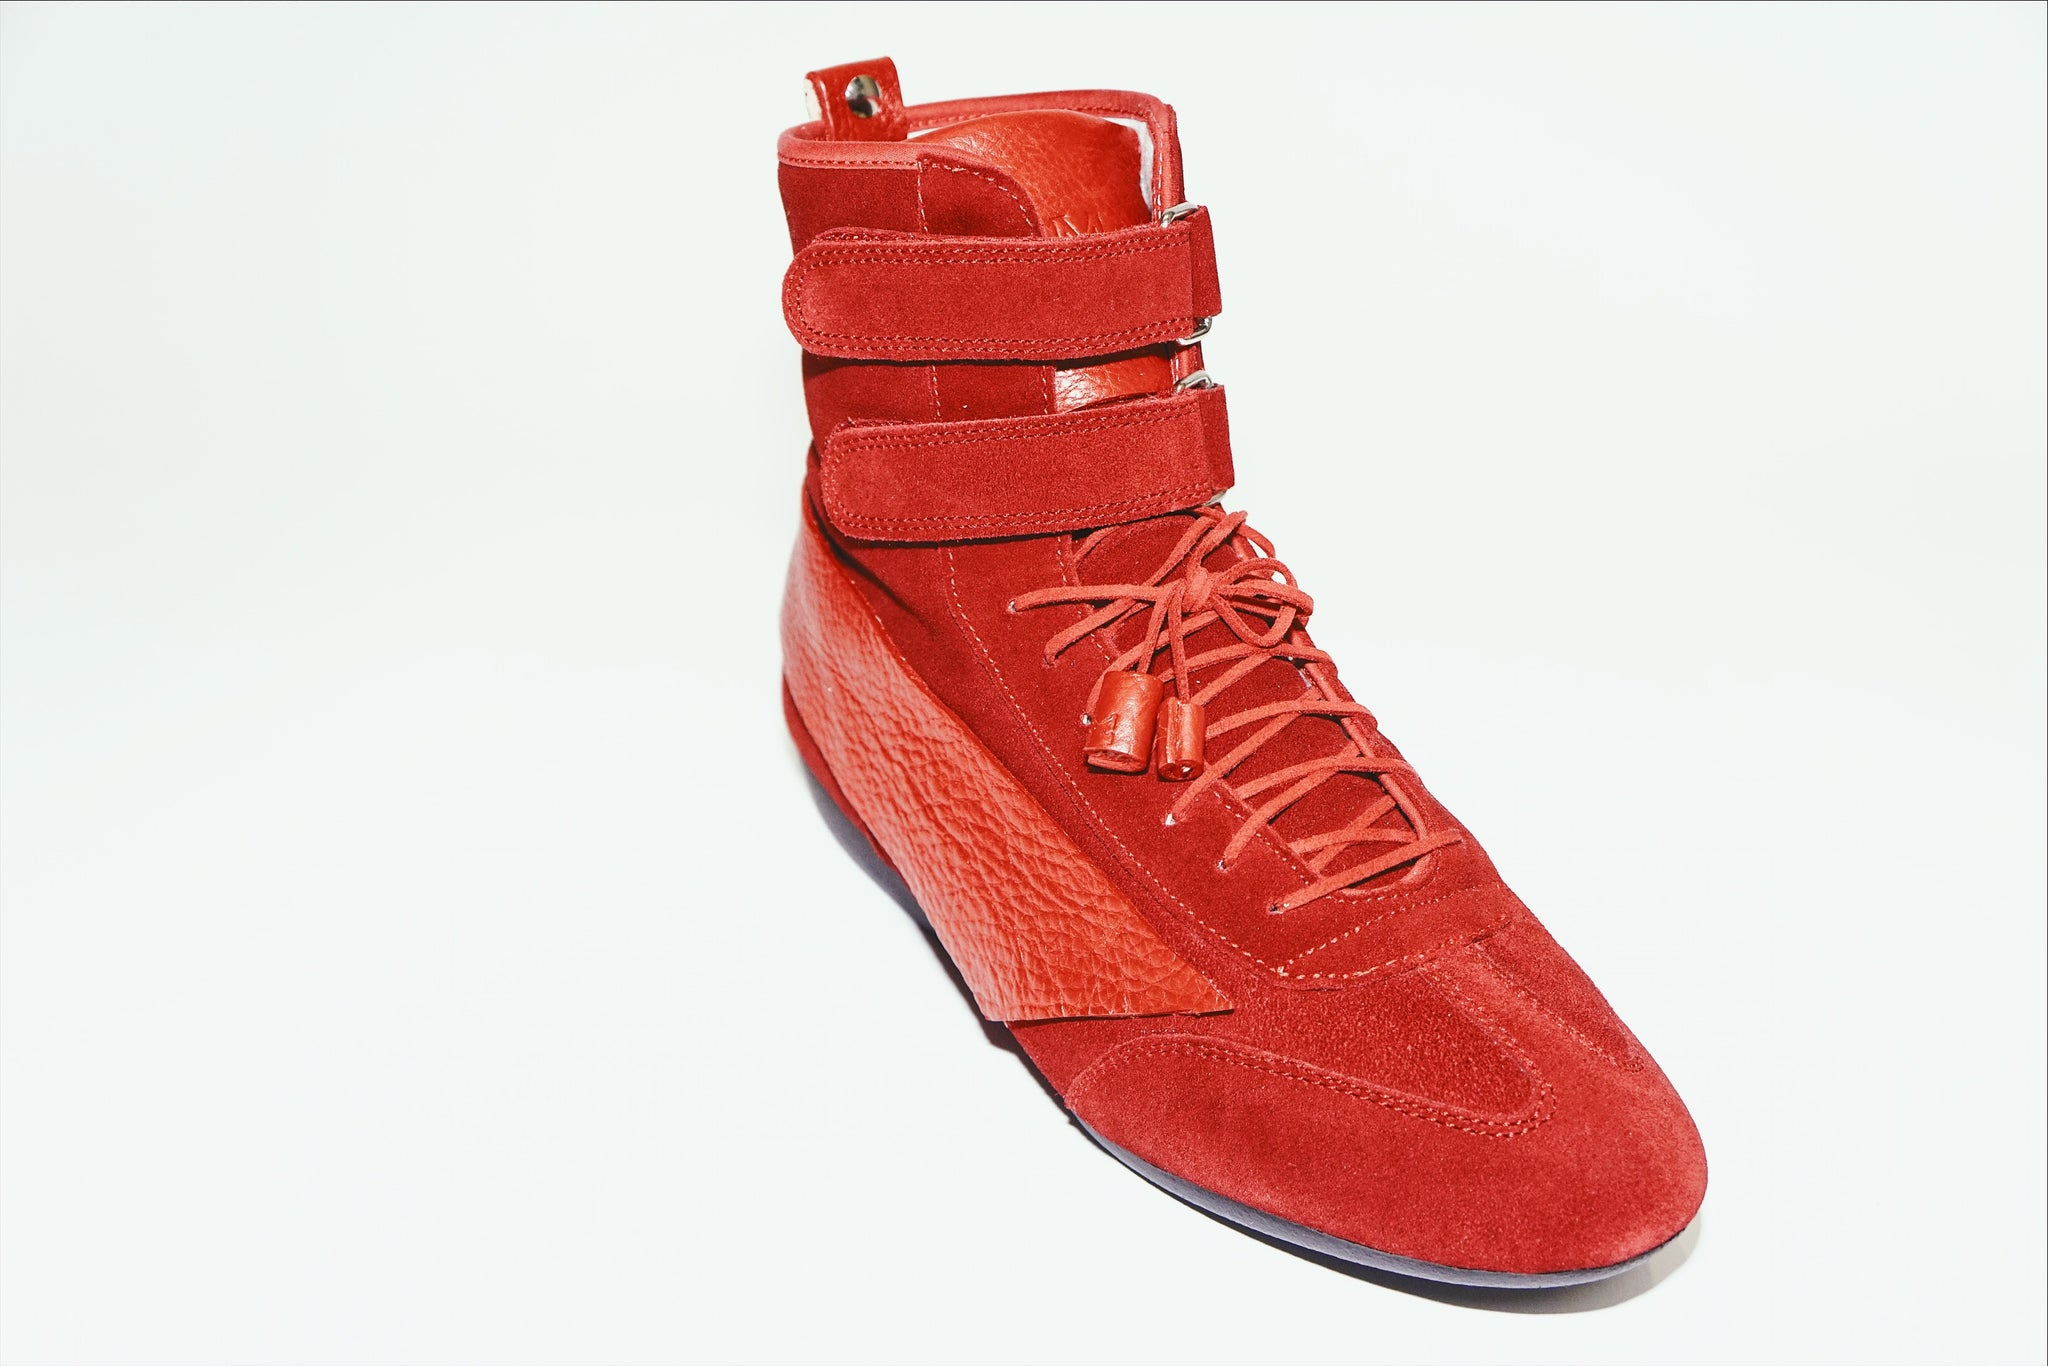 magikusa - MAGIK ARK HIGH SNEAKER - LAVA RED - FOOTWEAR